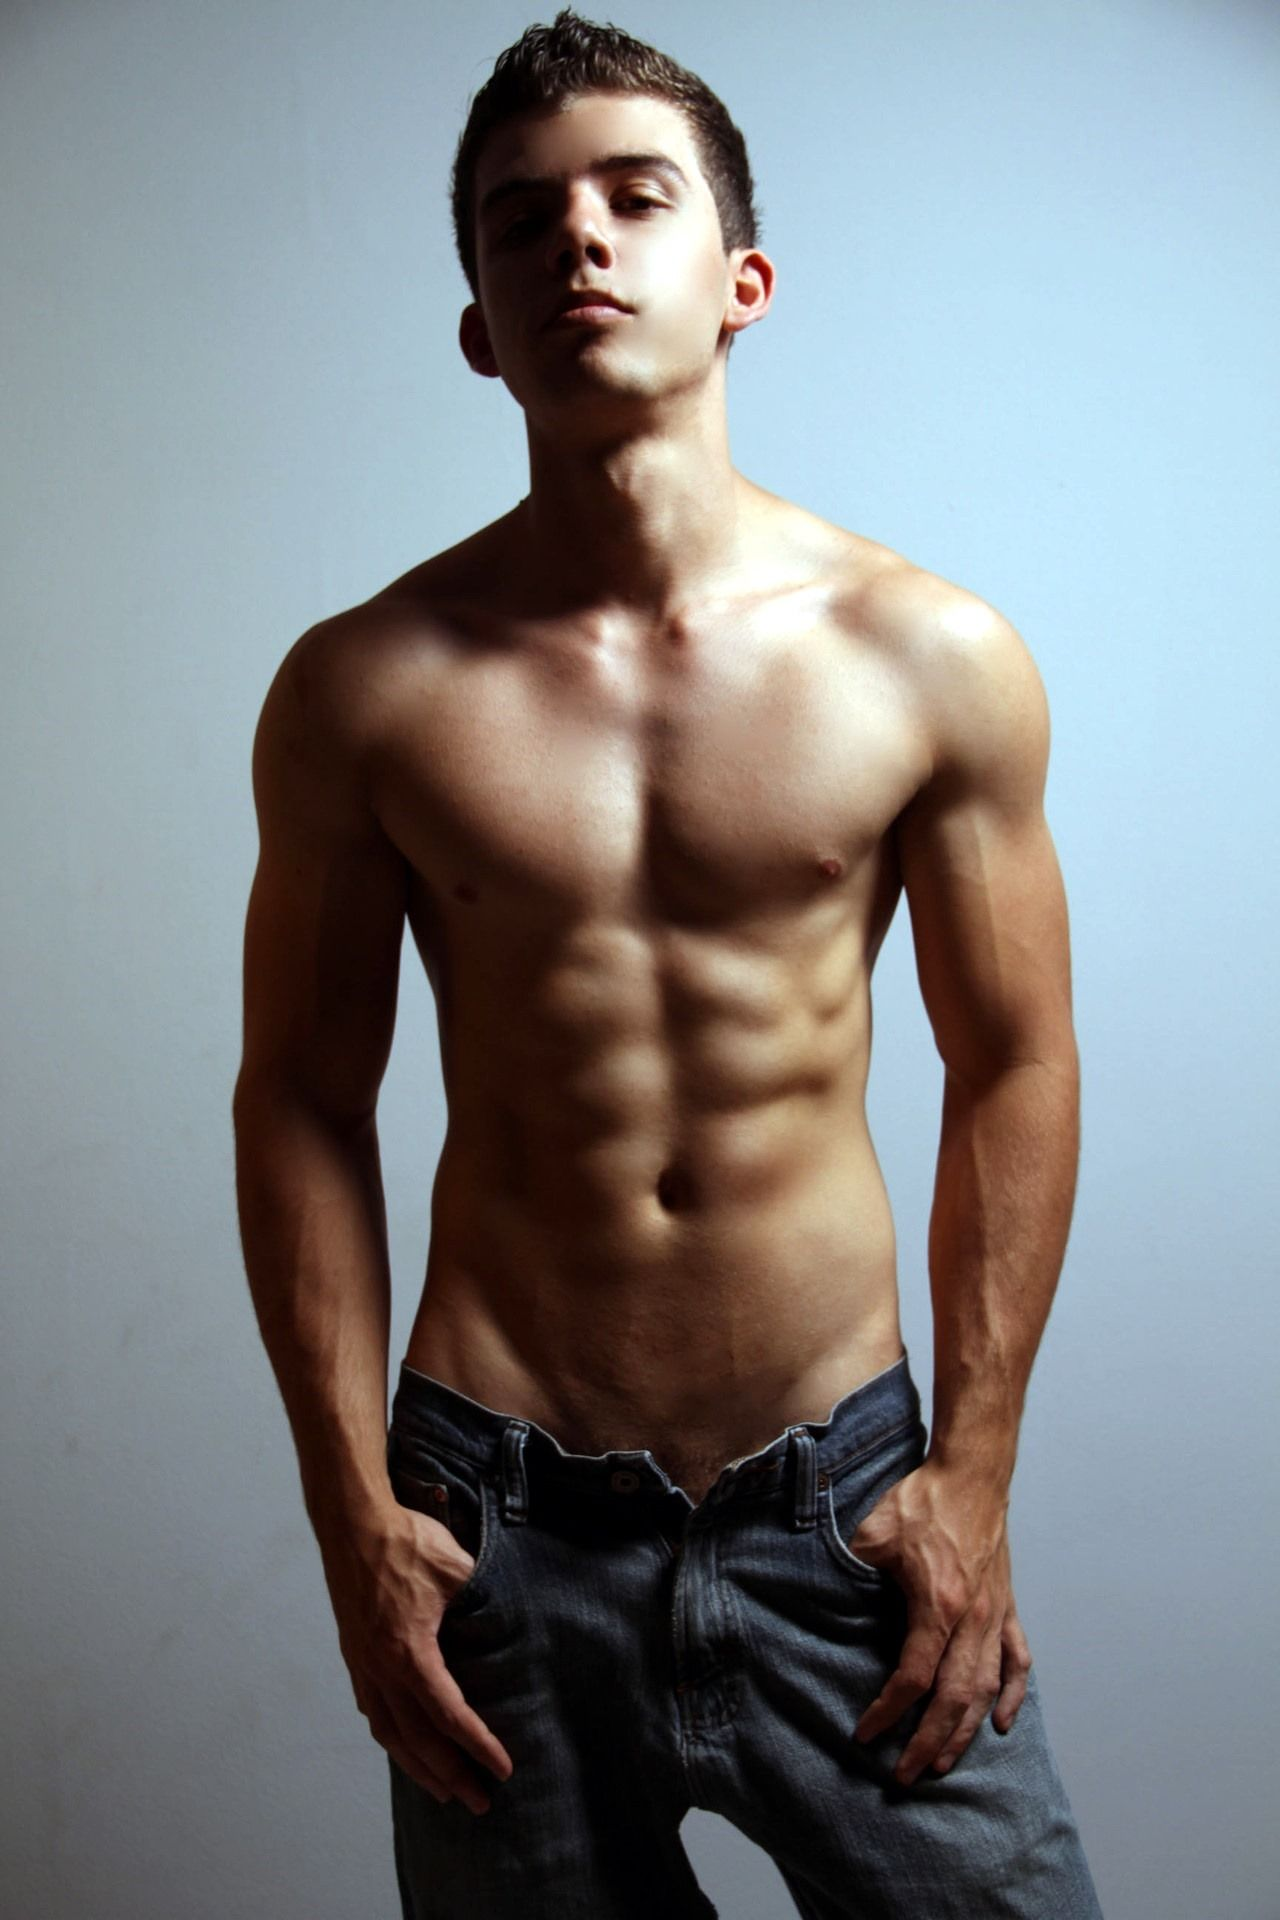 Holding My Own | SWEET | Pinterest | Shirtless guys and Gay